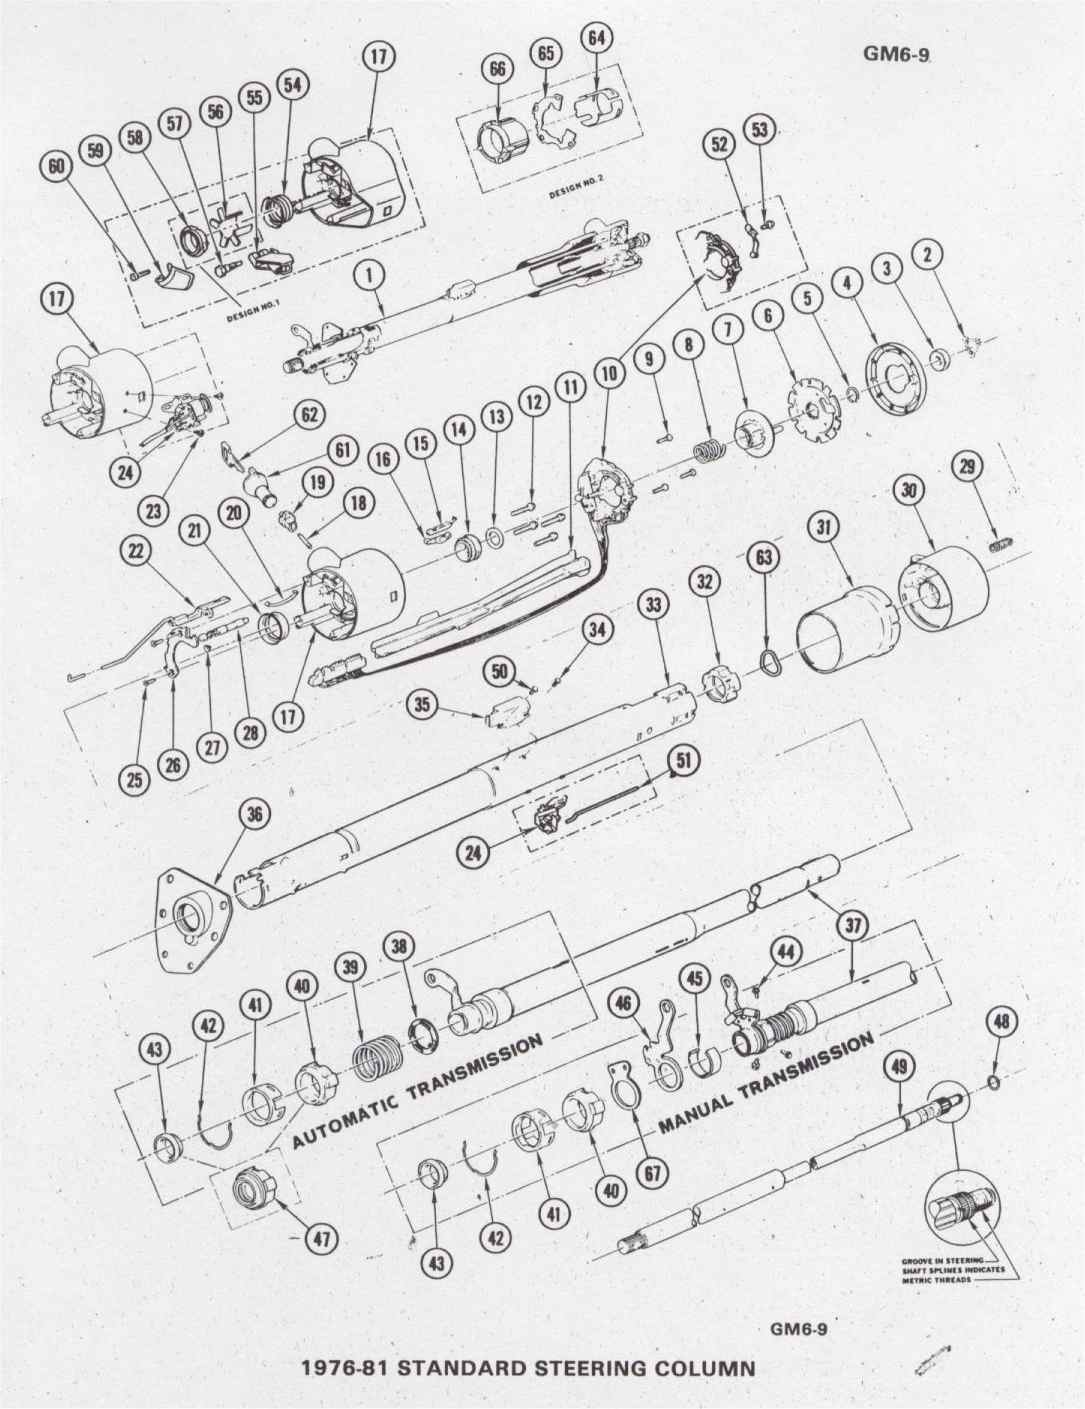 1980 camaro pdm assembly service info rh nastyz28 steering parts diagram f150 steering linkage diagram